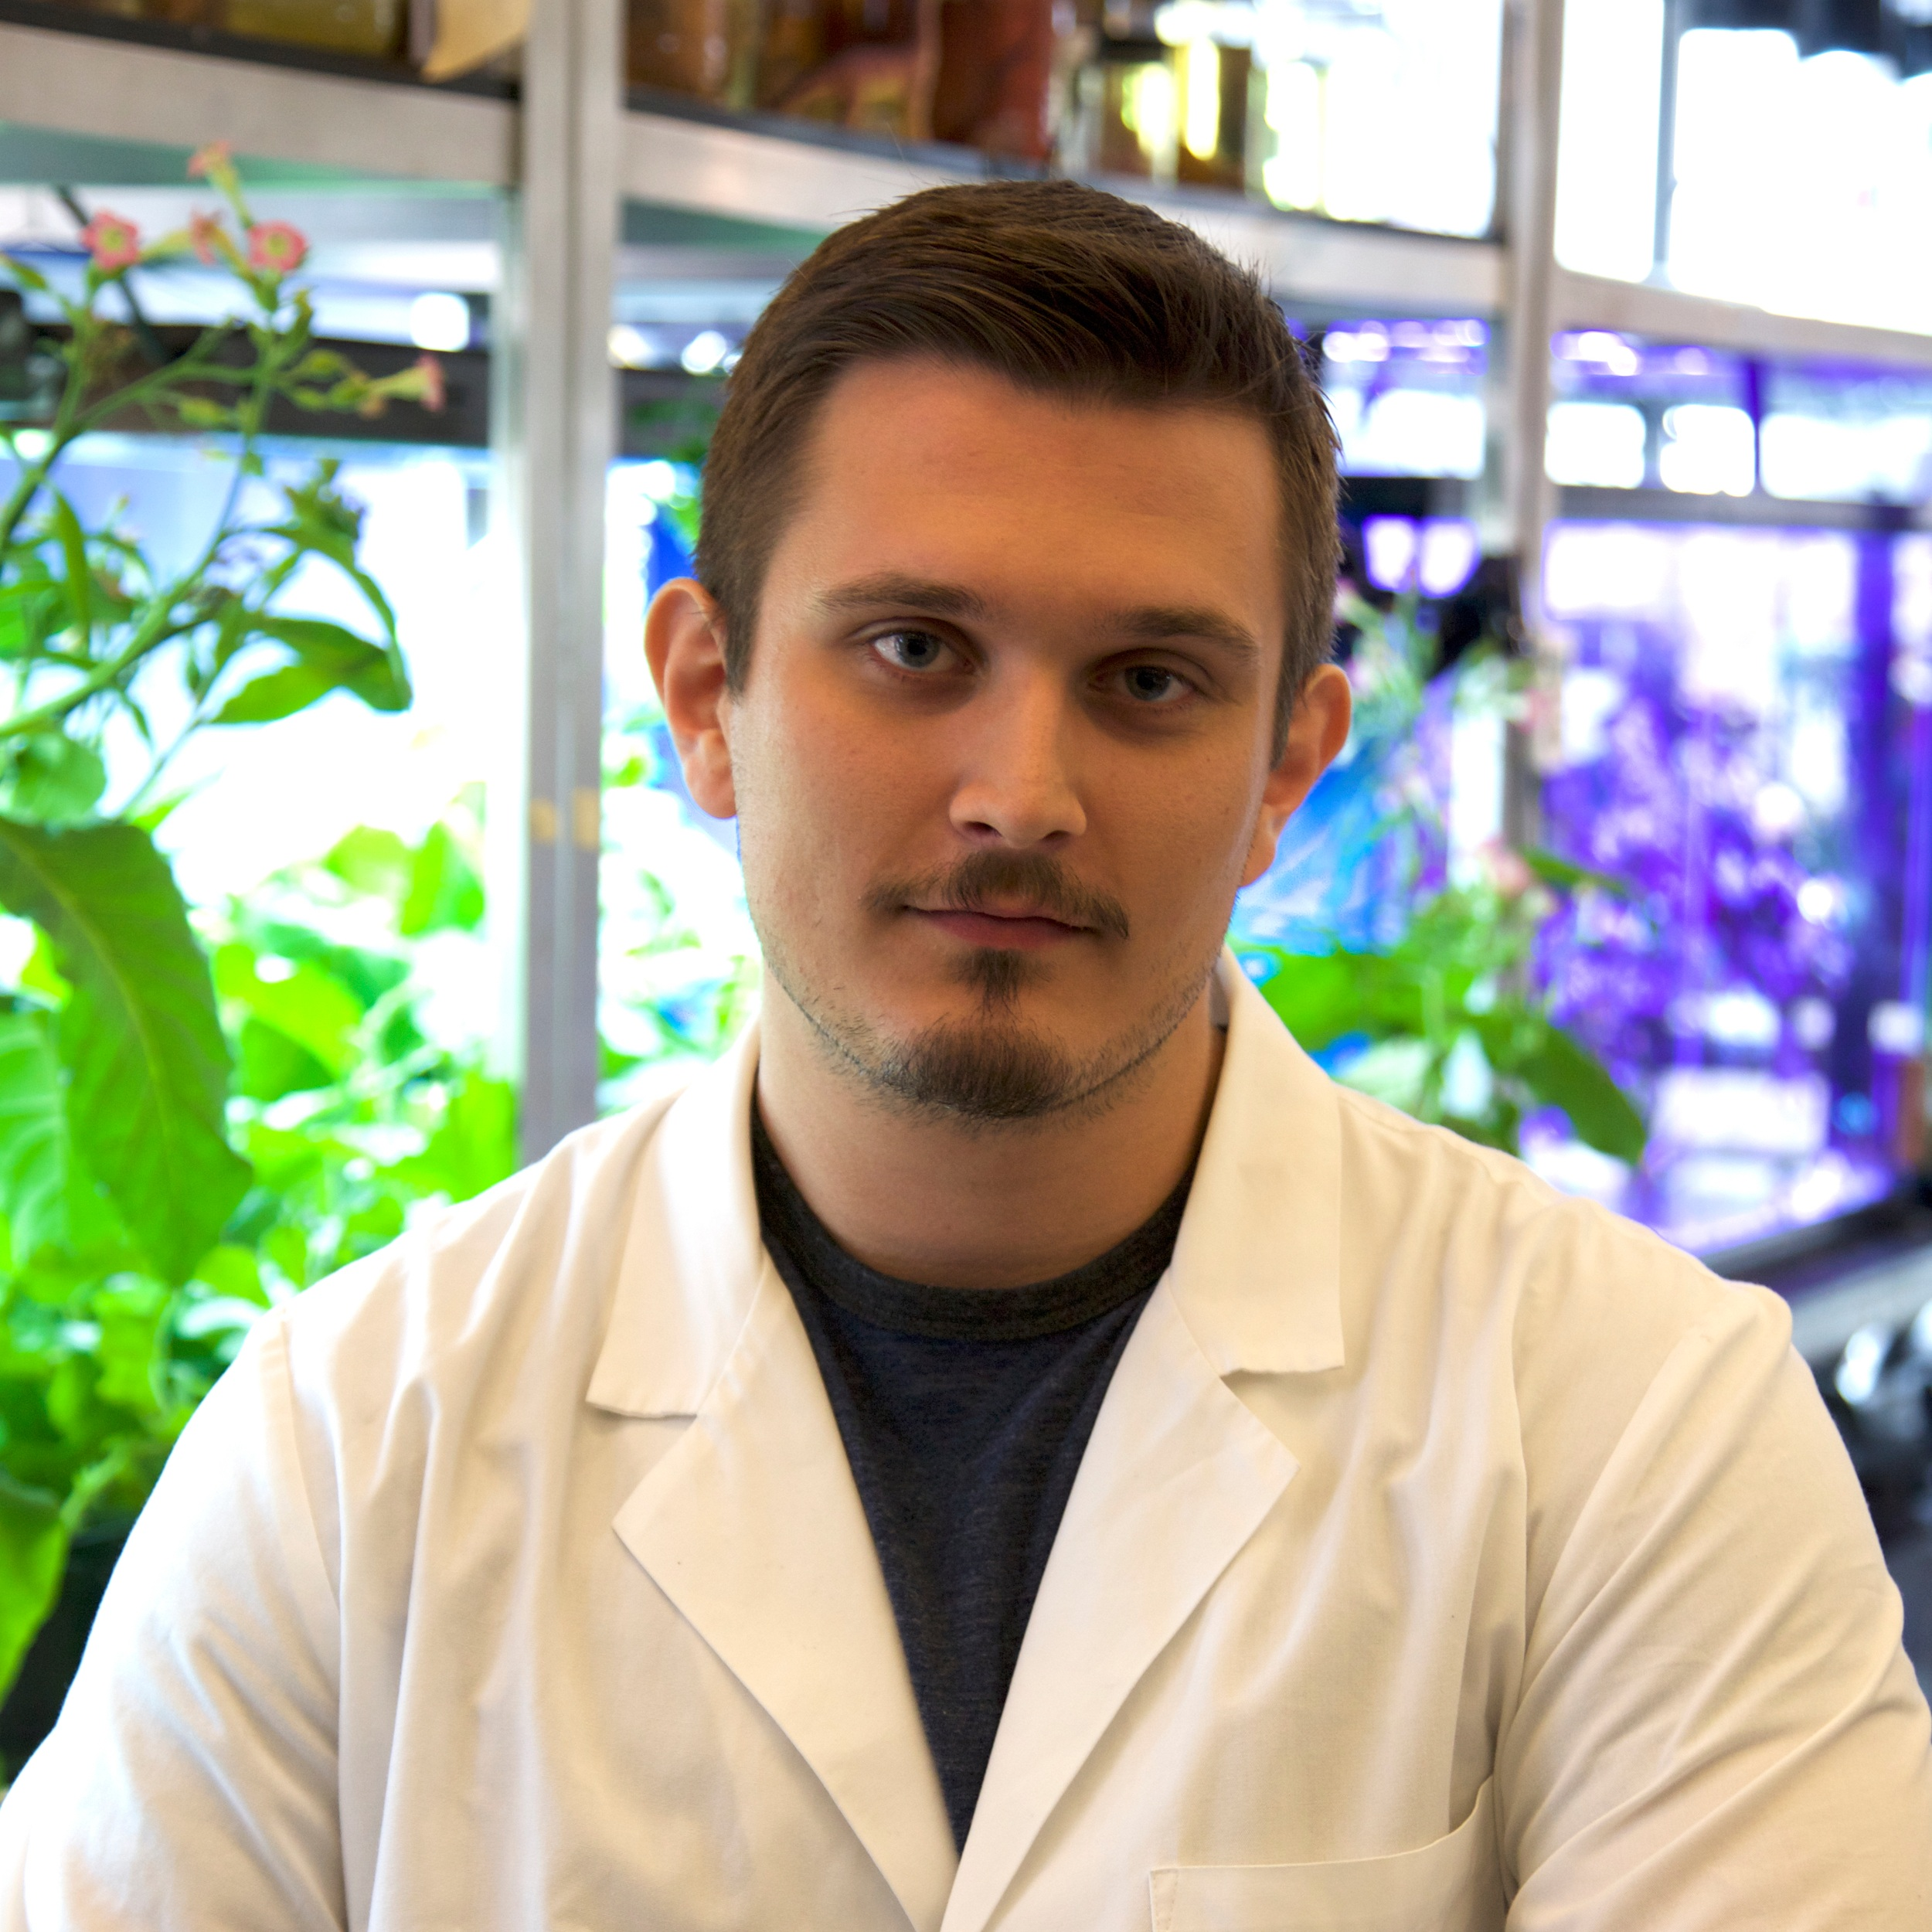 Sebastian Cocioba - Sebastian Cocioba is a biology undergrad, CEO & founder at New York Botanics, LLC, an ornamental plant genetic engineering start-up located in New York City. He is also an independent researcher for the education-oriented biotech non-profit, Binomica Labs. His research focuses on the nutritional requirements of life and the metabolic basis of speciation as well as the development of open source hardware for use in the molecular biology setting both formal and amateur.